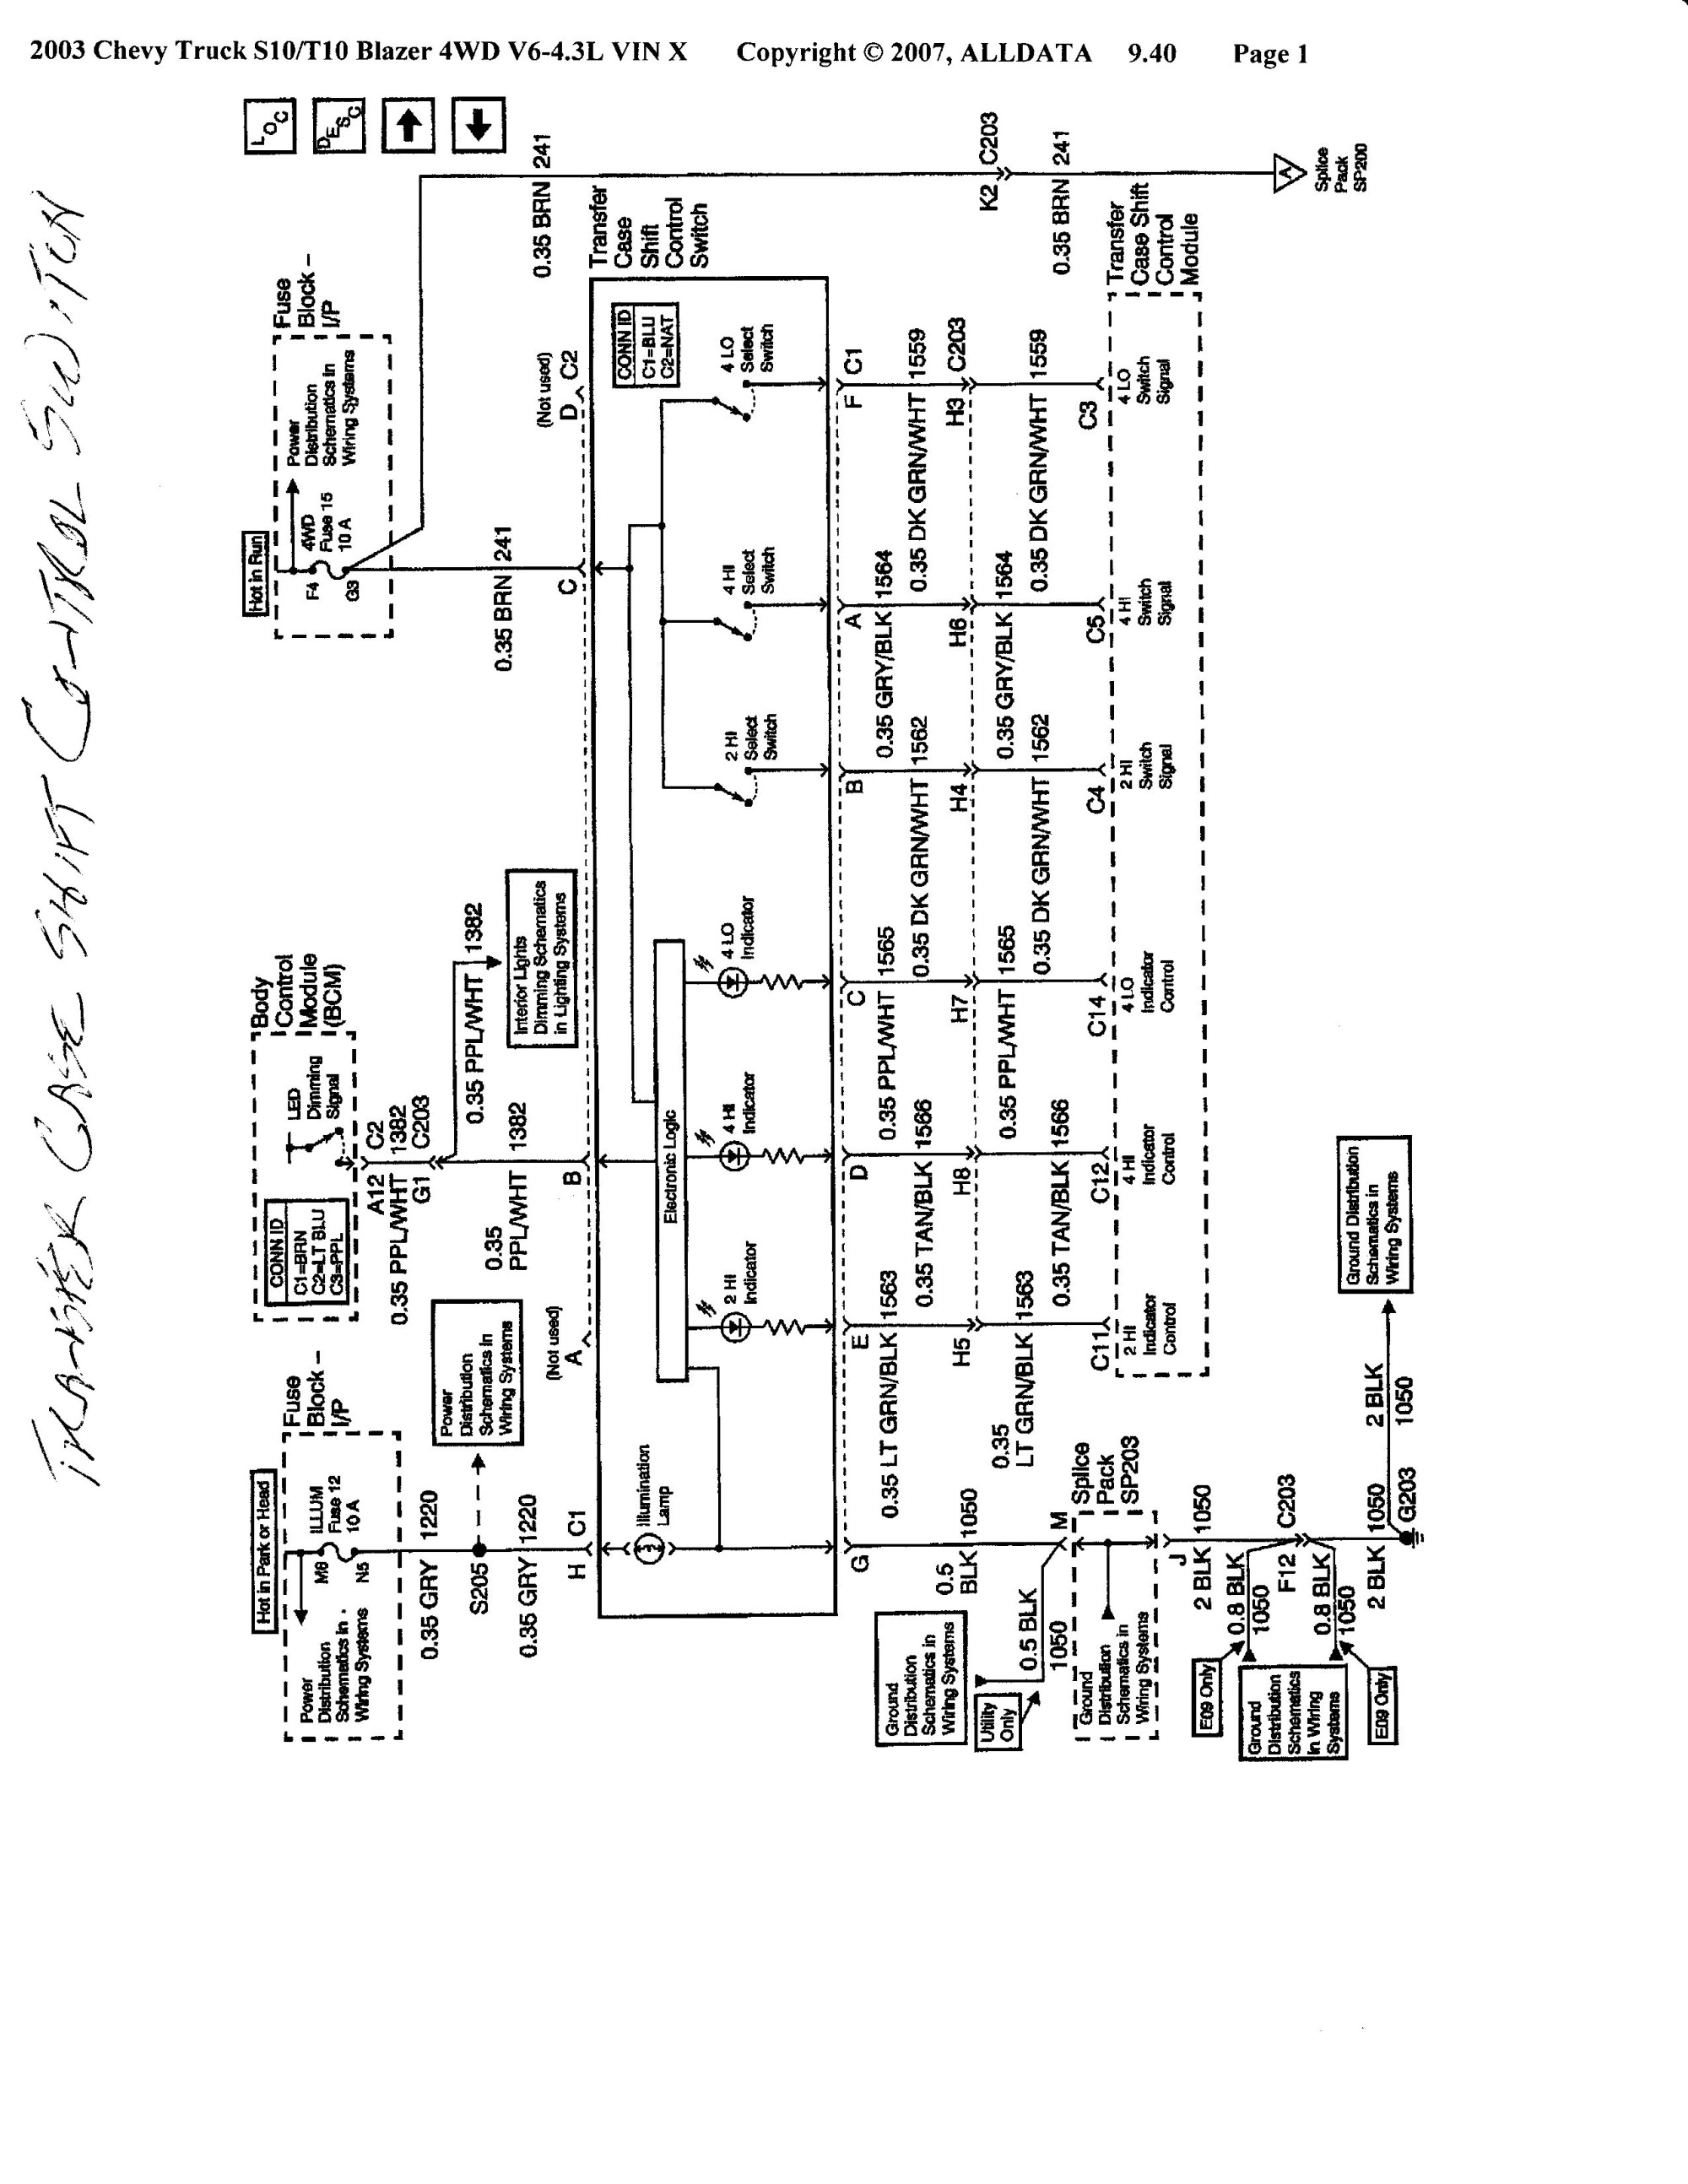 hight resolution of 1992 chevy s10 blazer wiring diagram auto electrical wiring diagram 2000 camaro wiring diagram 2000 blazer